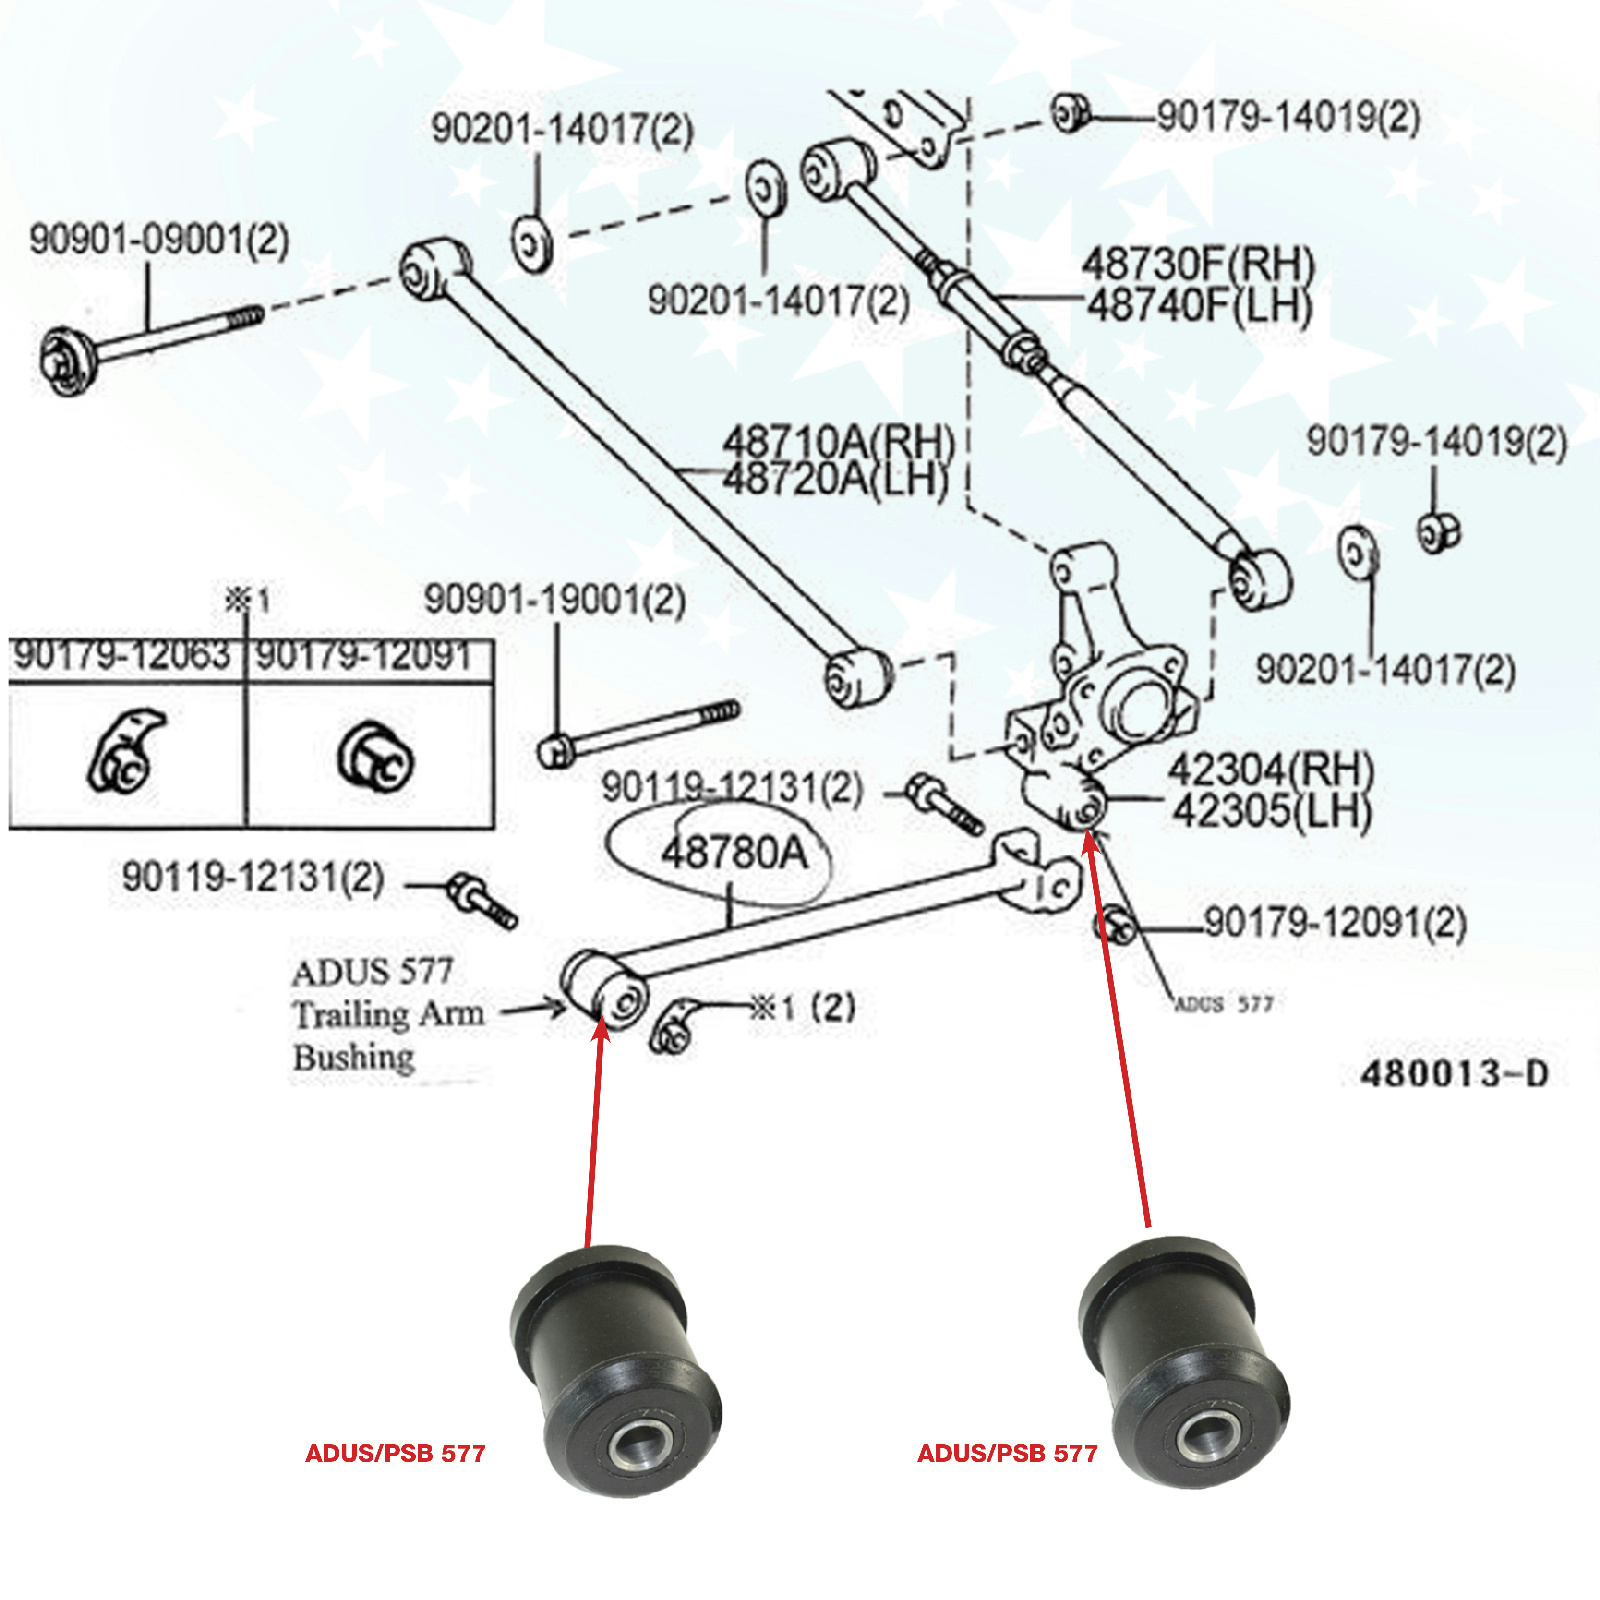 Lexus Es300 Diagram Starting Know About Wiring Starter For 1997 2x Toyota Camry 91 06 01 Rear Axle Trailing Arm Parts Belt